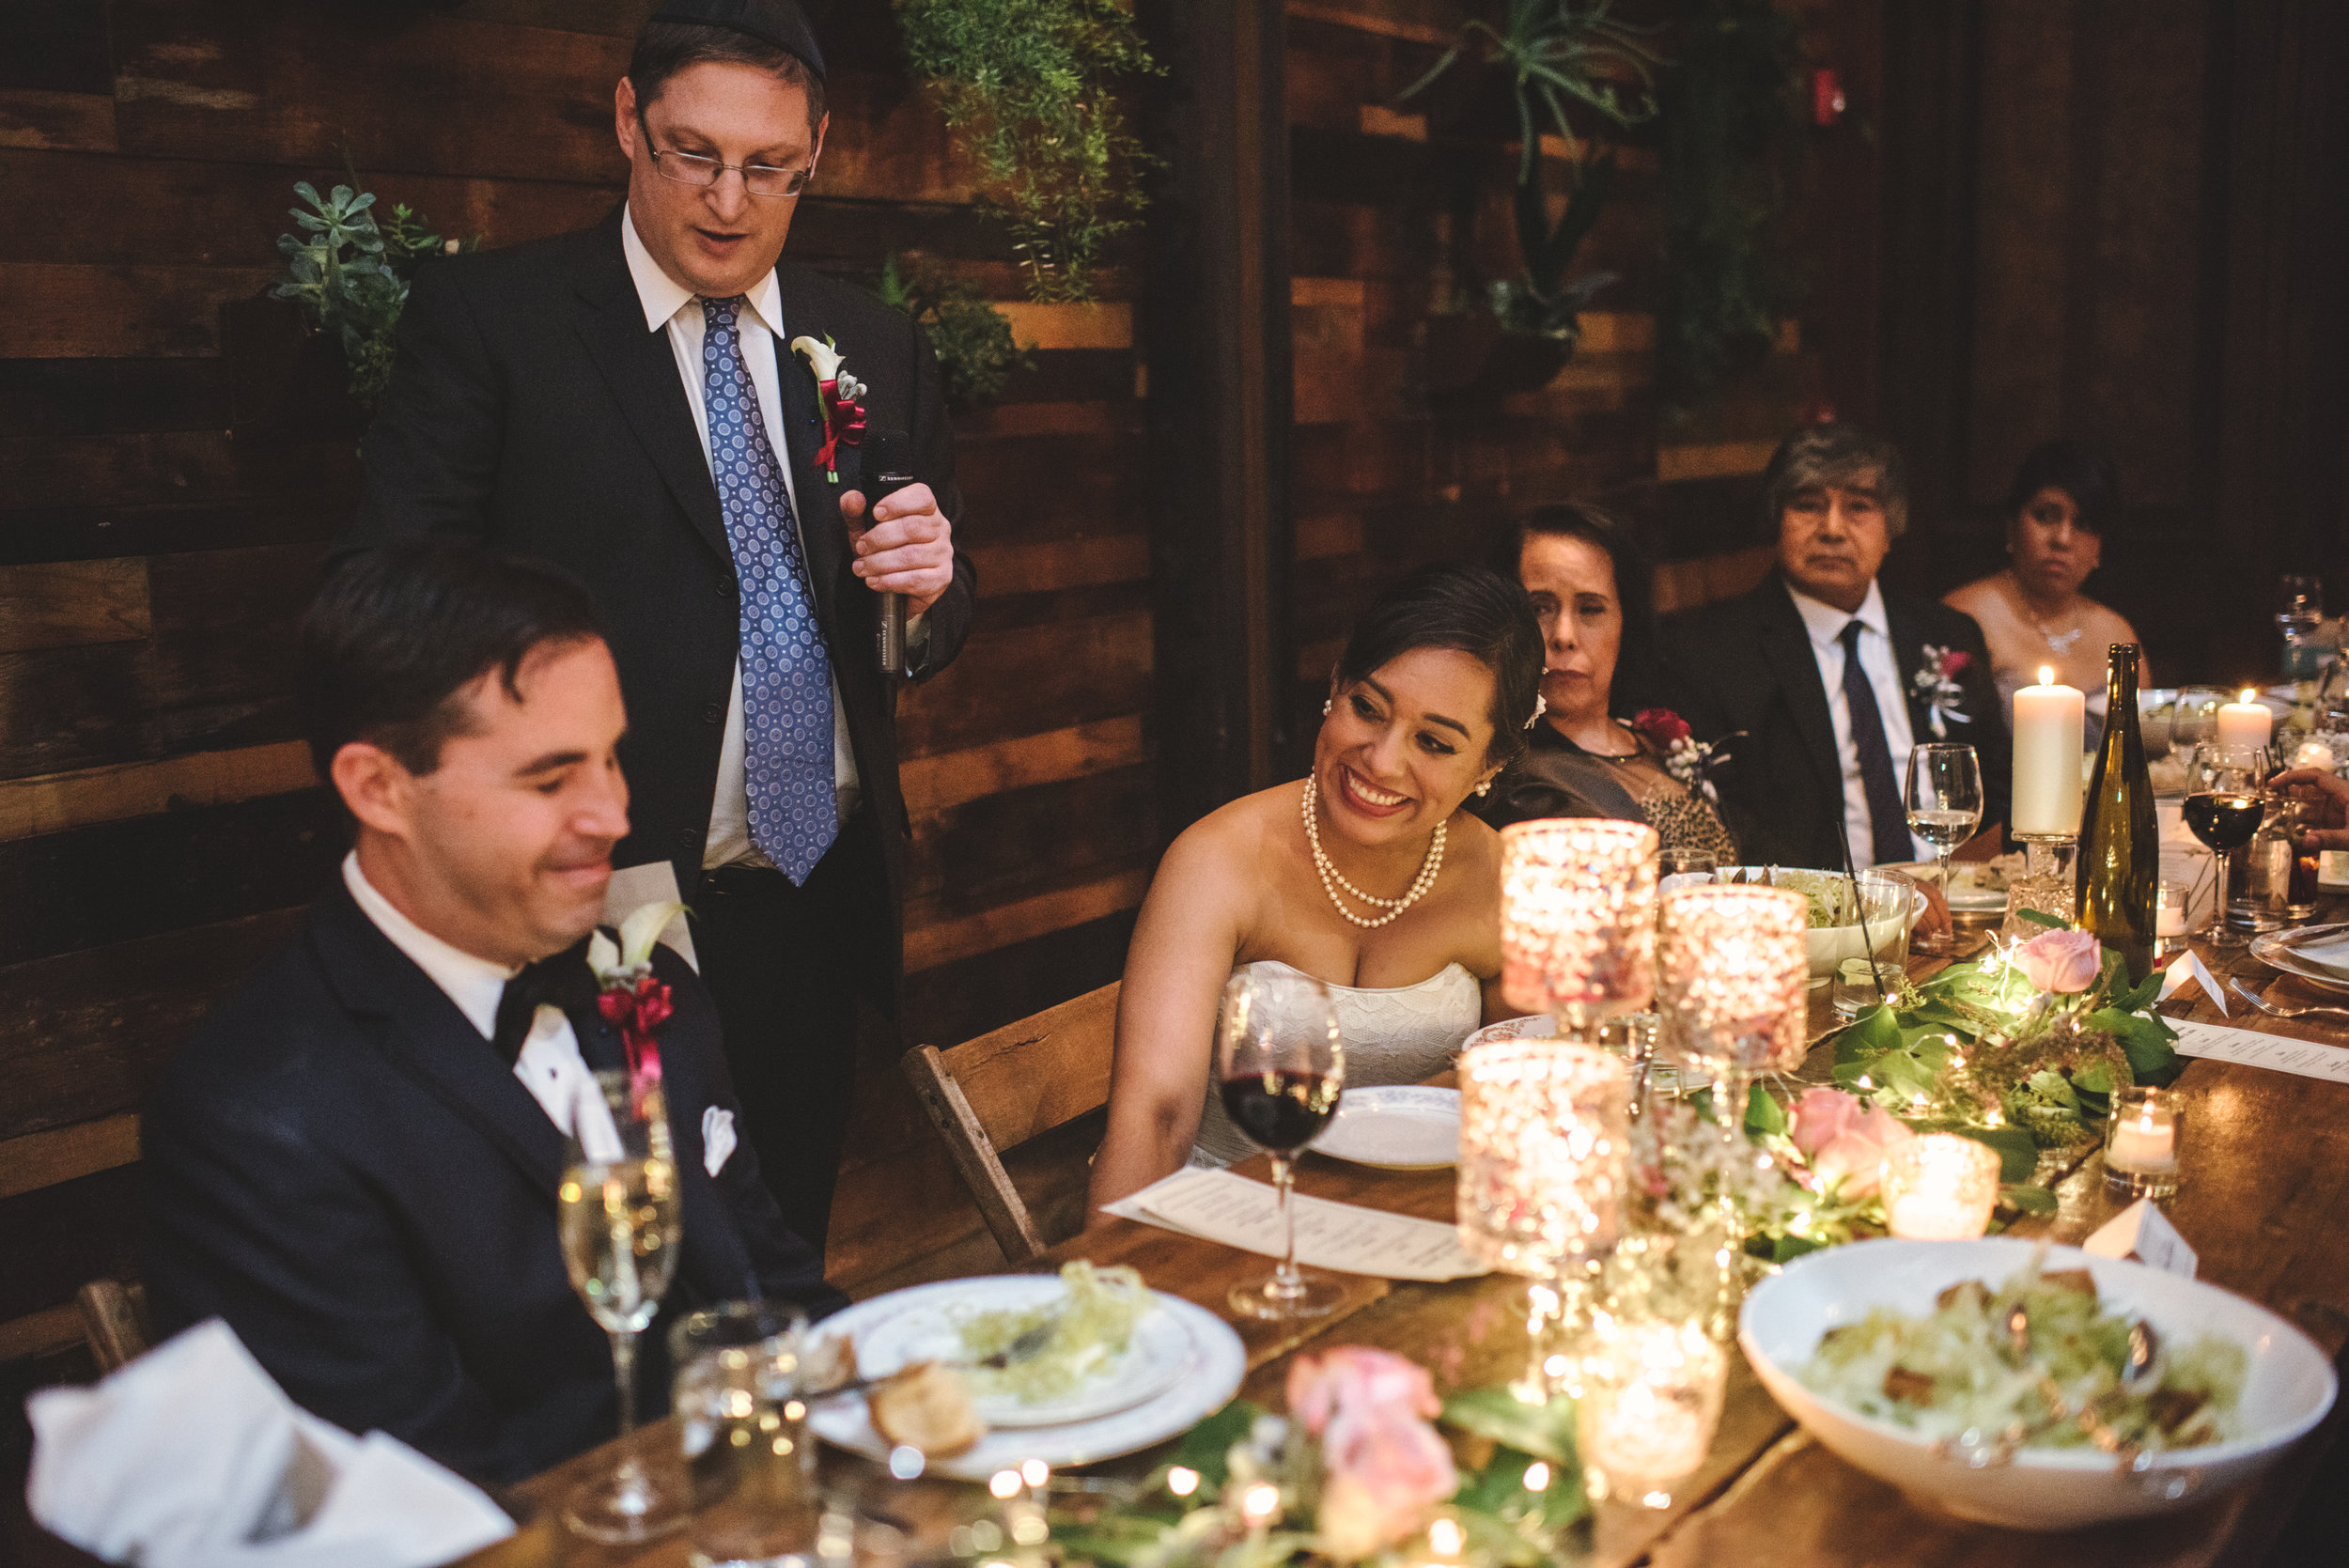 BROOKLYN WINERY WEDDING - TWOTWENTY by CHI-CHI AGBIM-385.jpg